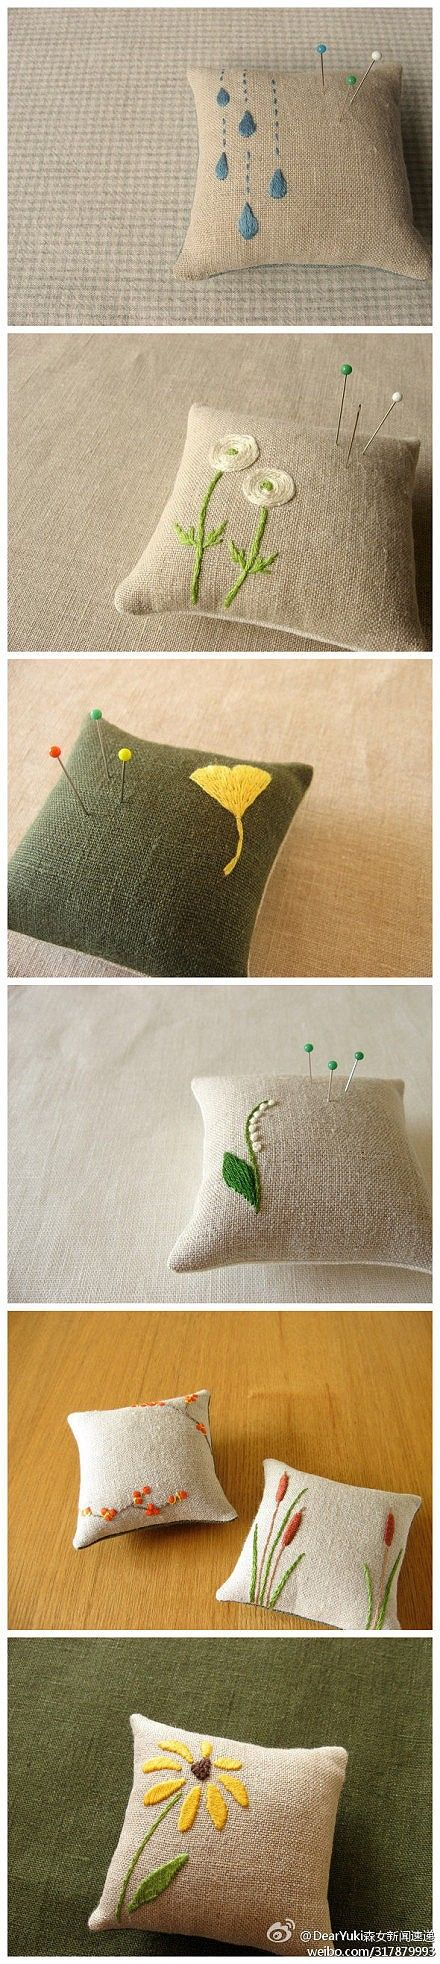 Embroidery needle inserted